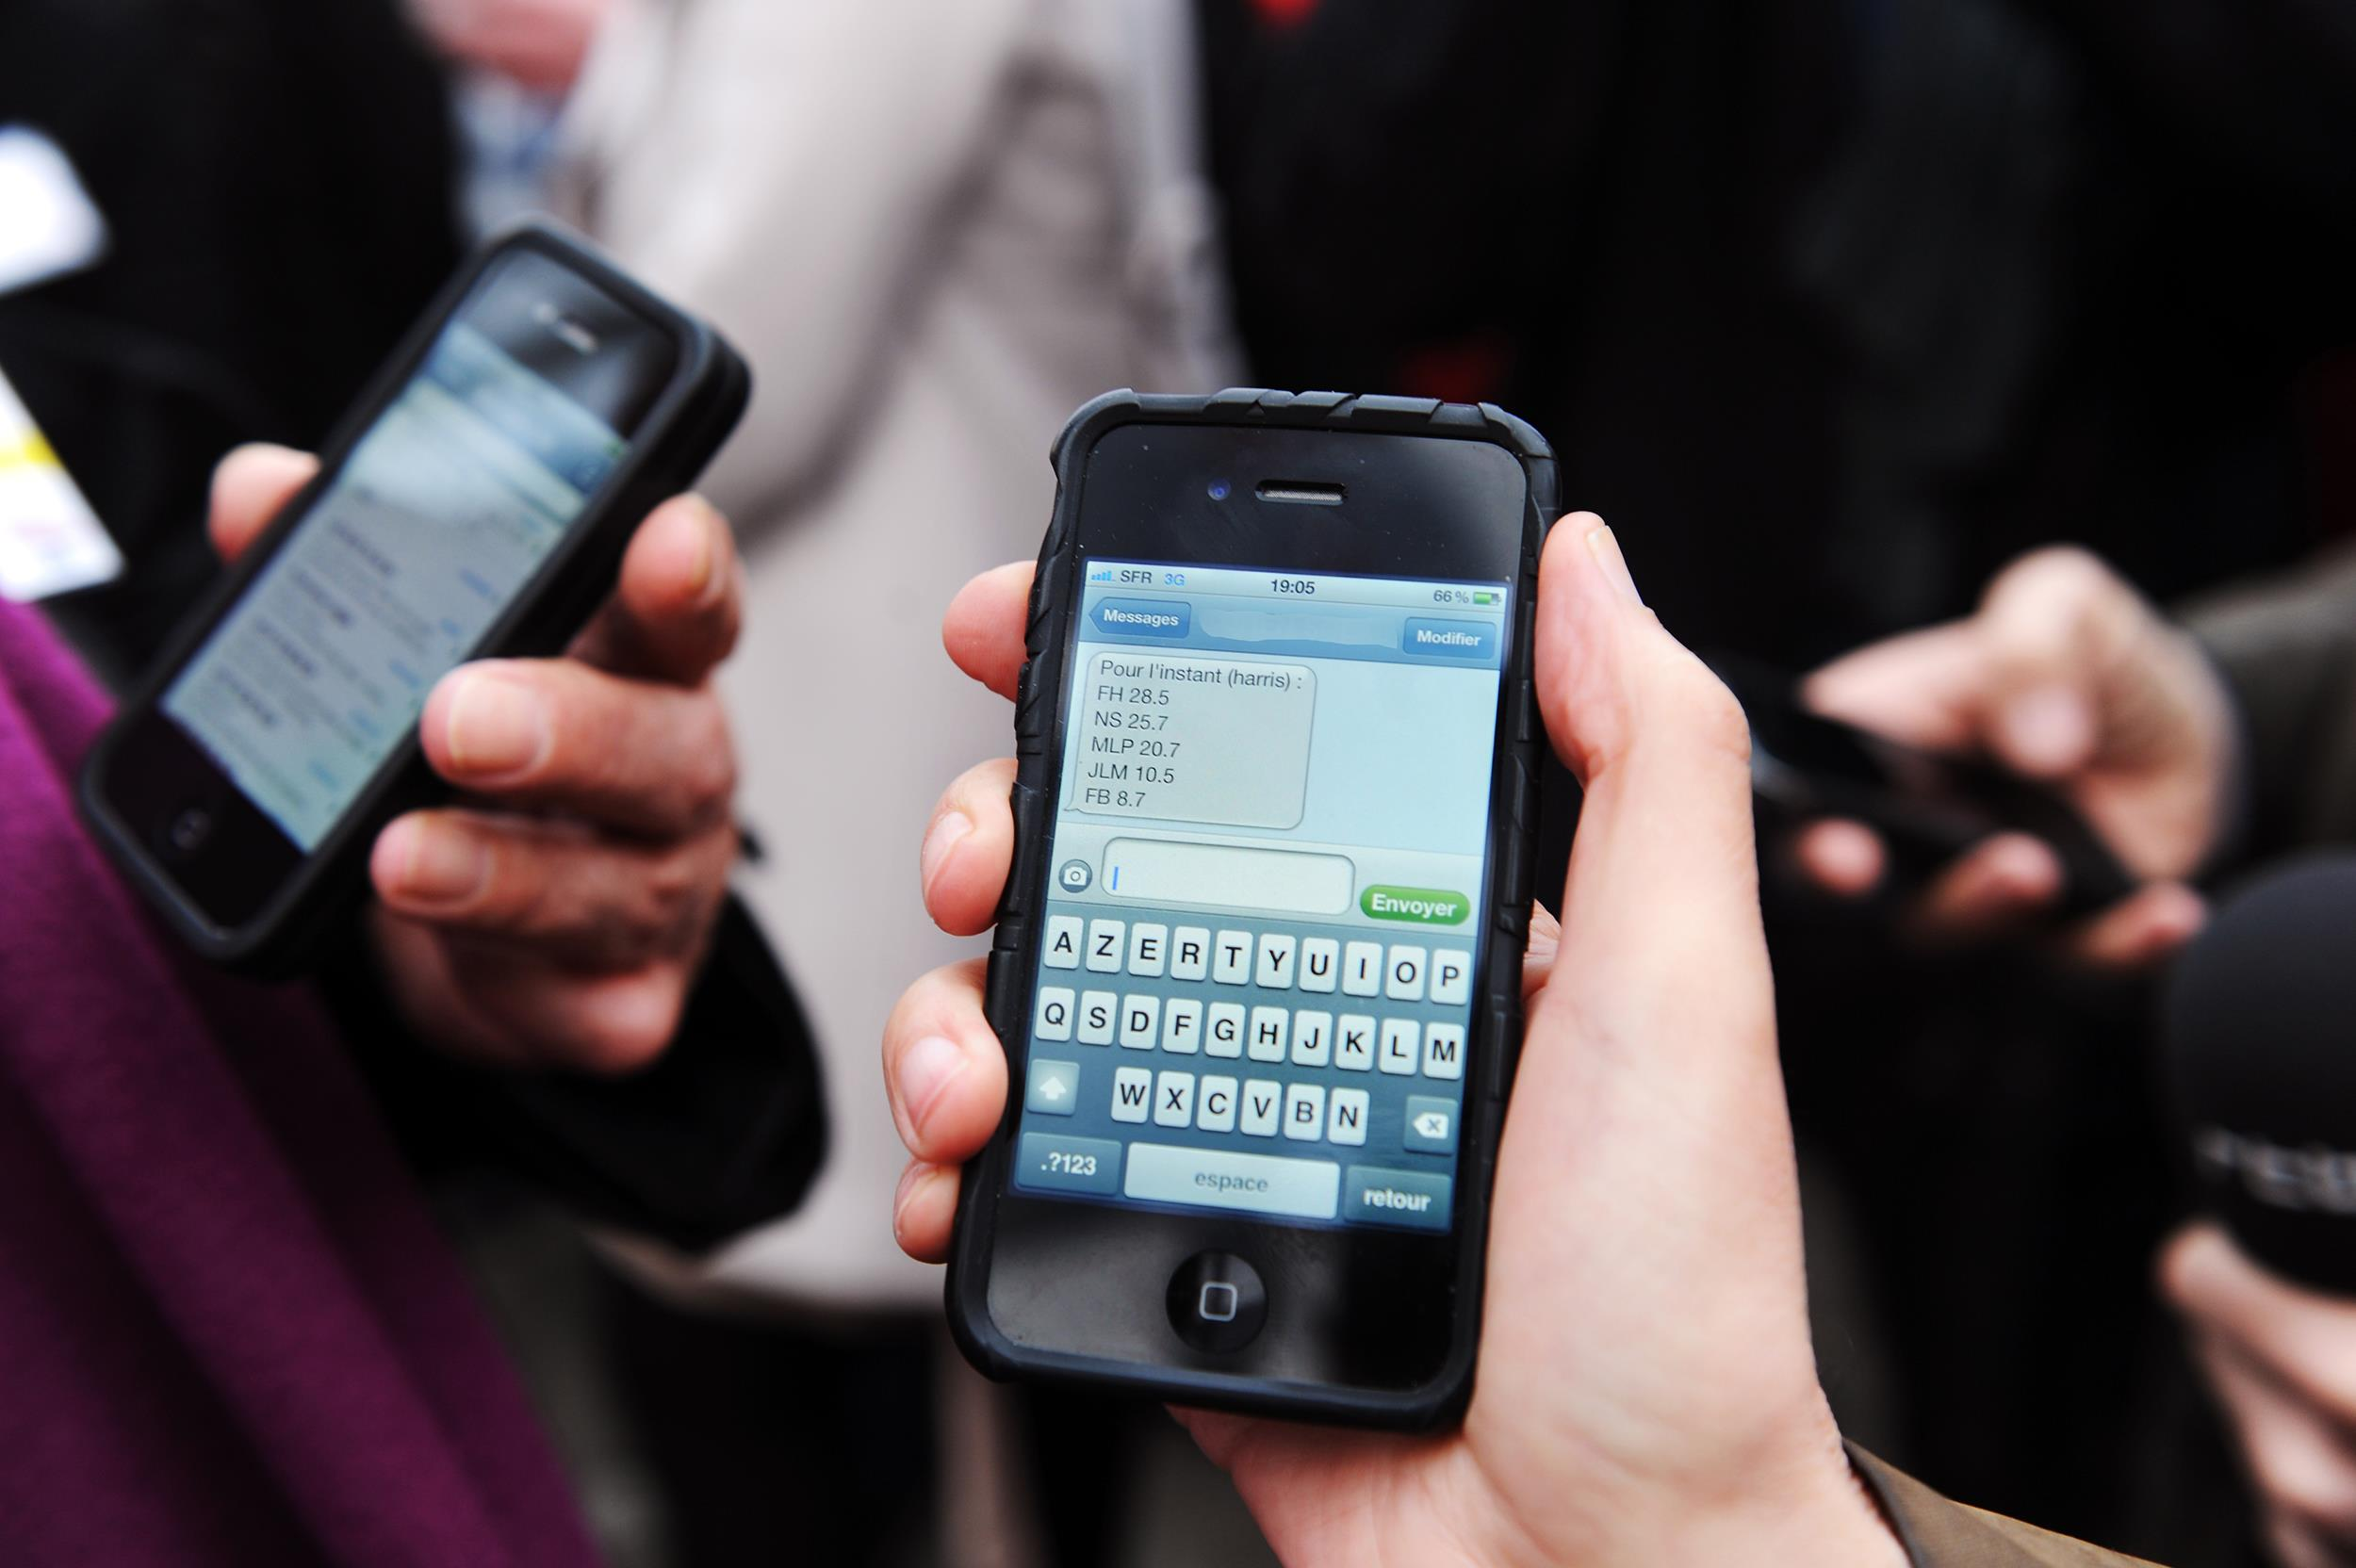 Image: People receive messages on their mobile phone